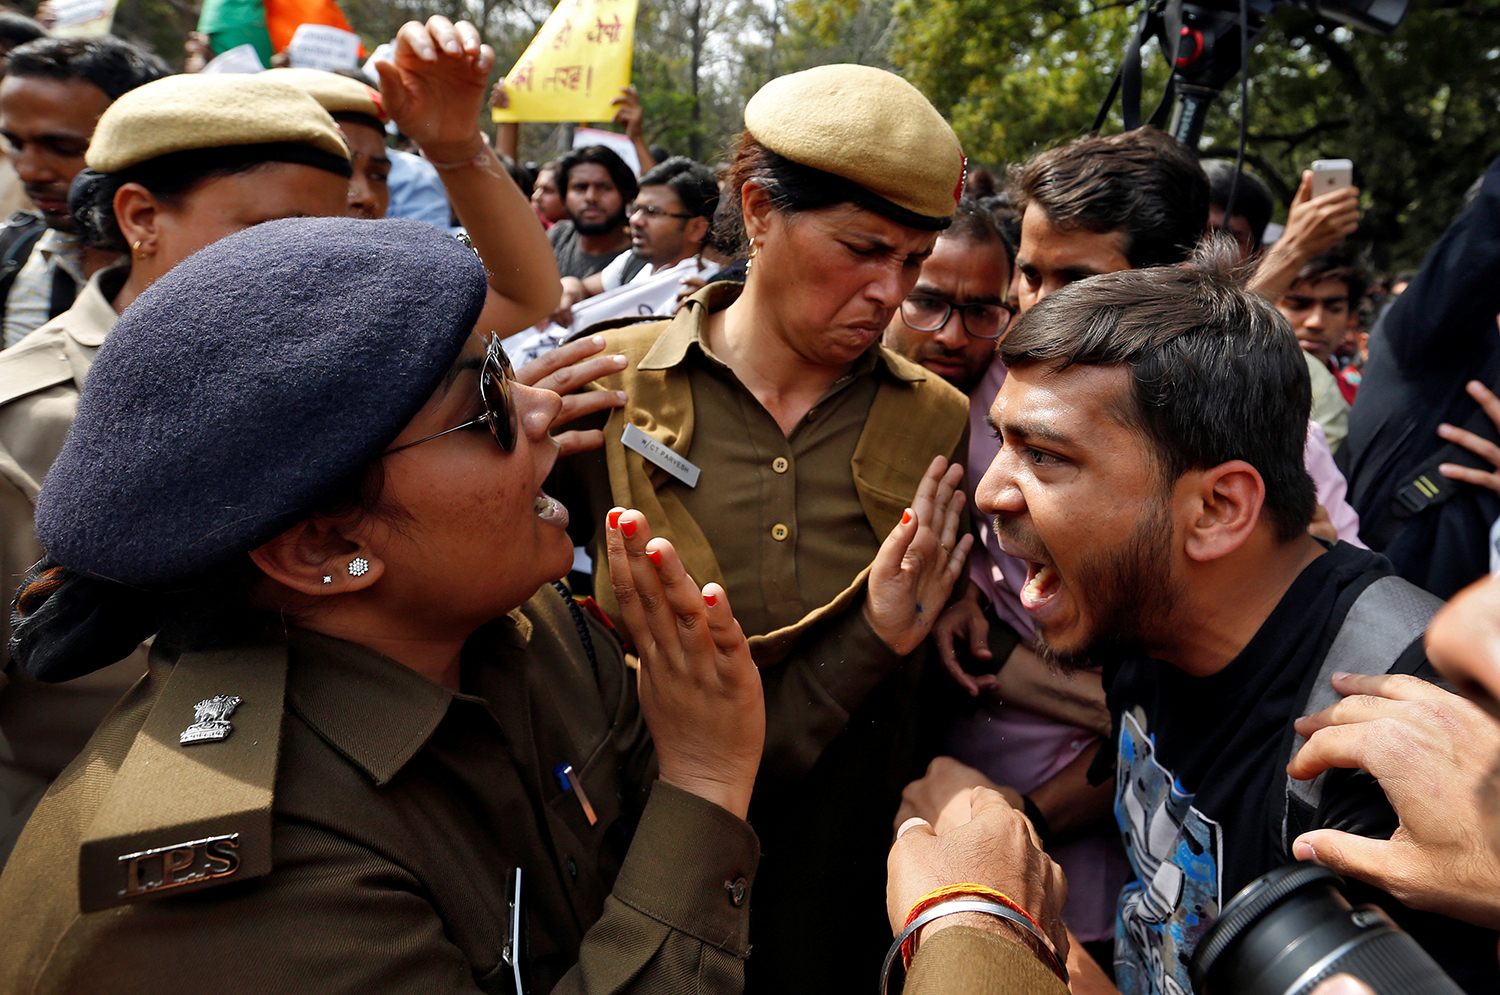 DELHI 2017-02-28 A protestor and police officer react during a march held on campus against violence and intimidation within Delhi University, India, February 28, 2017. REUTERS/Cathal McNaughton TPX IMAGES OF THE DAY Photo: / REUTERS / TT / kod 72000